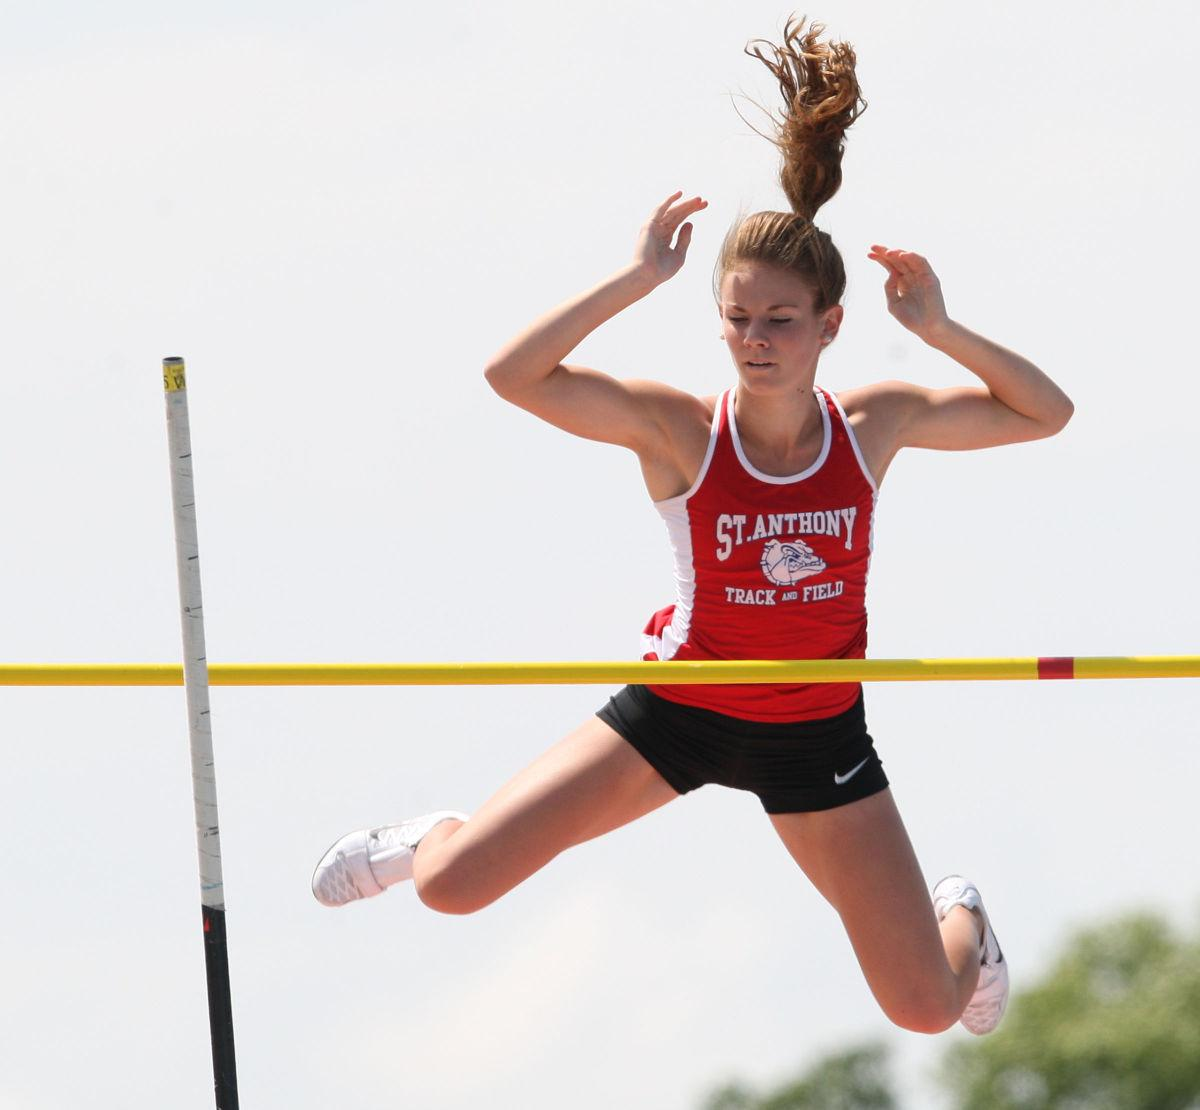 St  Anthony's Slaughter joins Keller at top | Track and